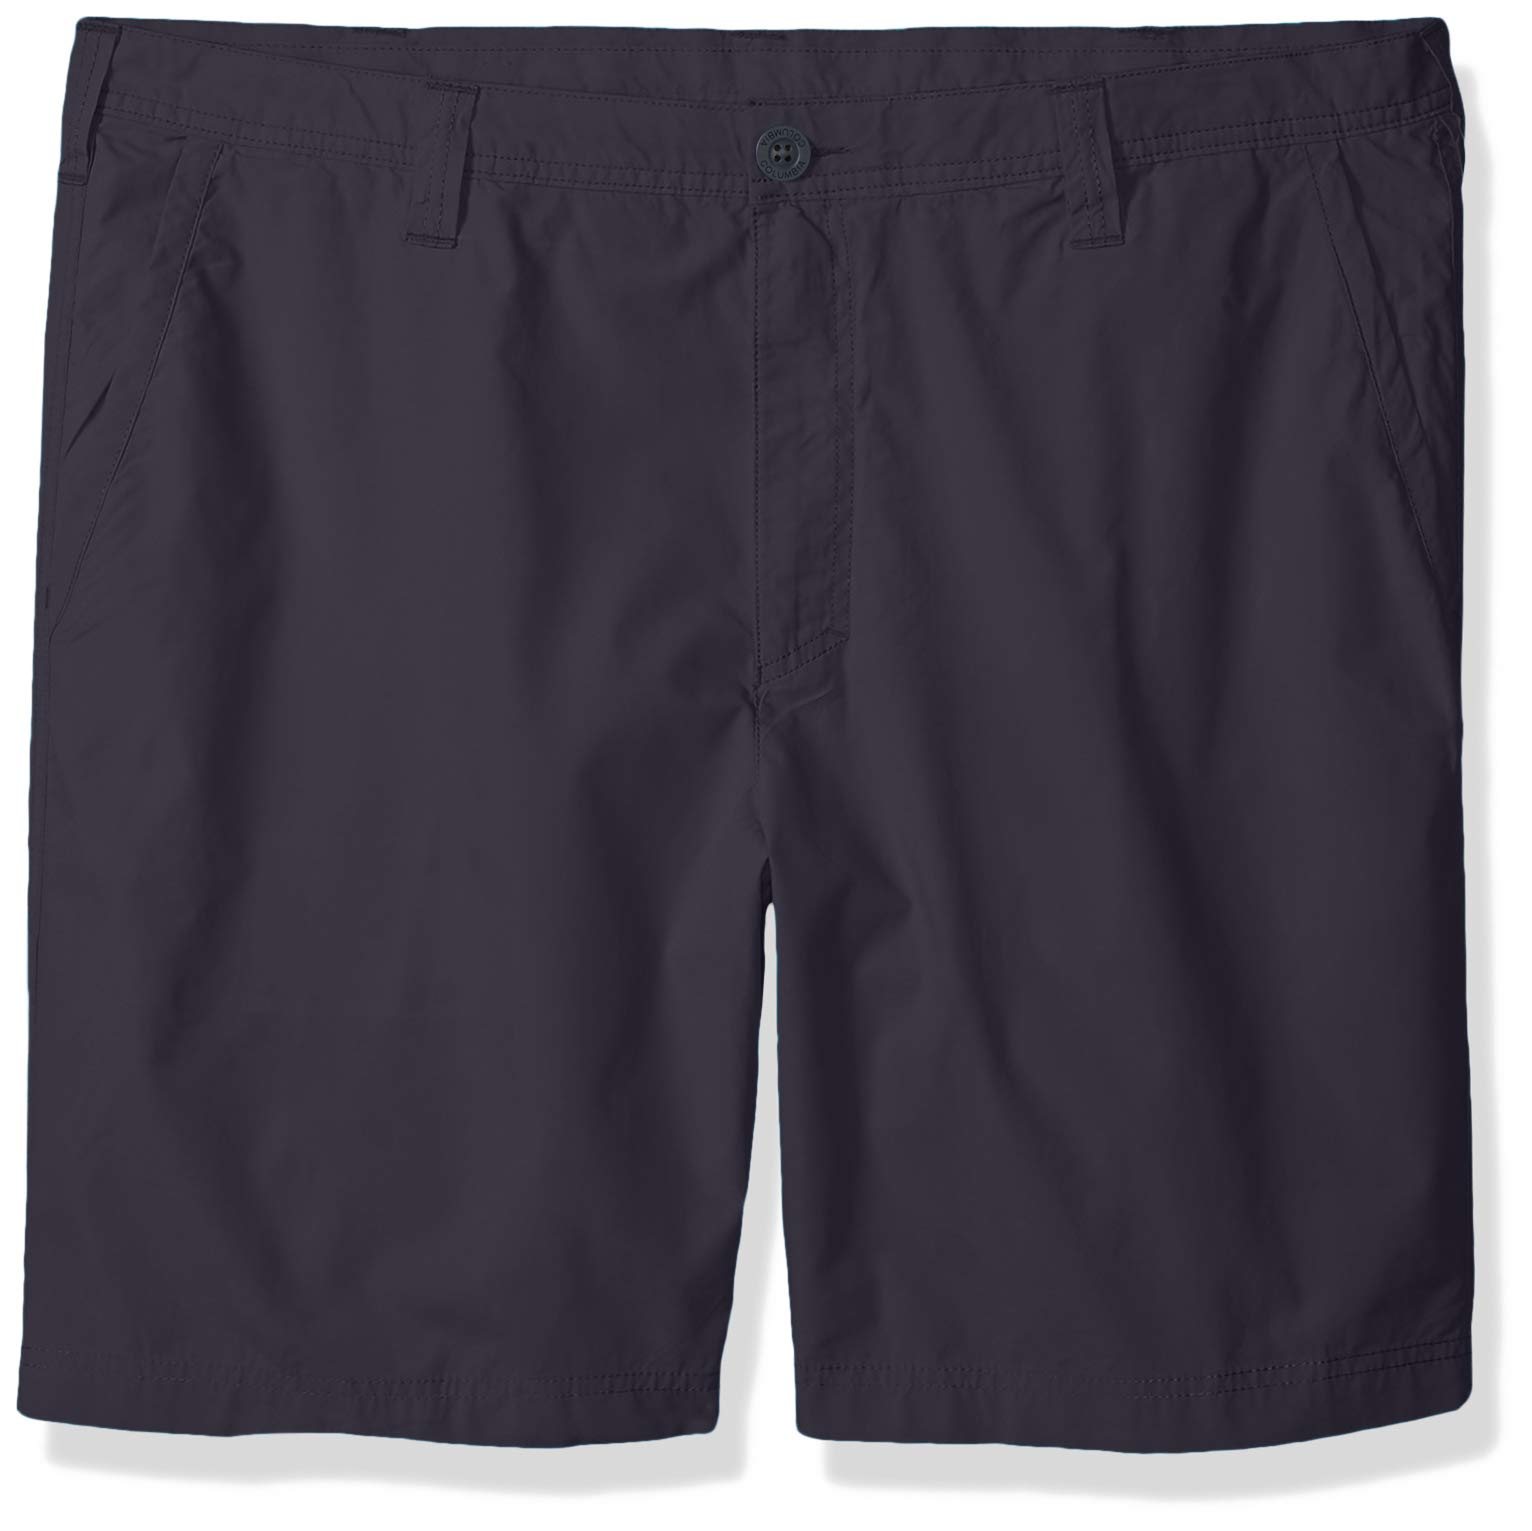 Columbia Big and Tall Men's Washed Out Chino Short, India Ink, 52x8